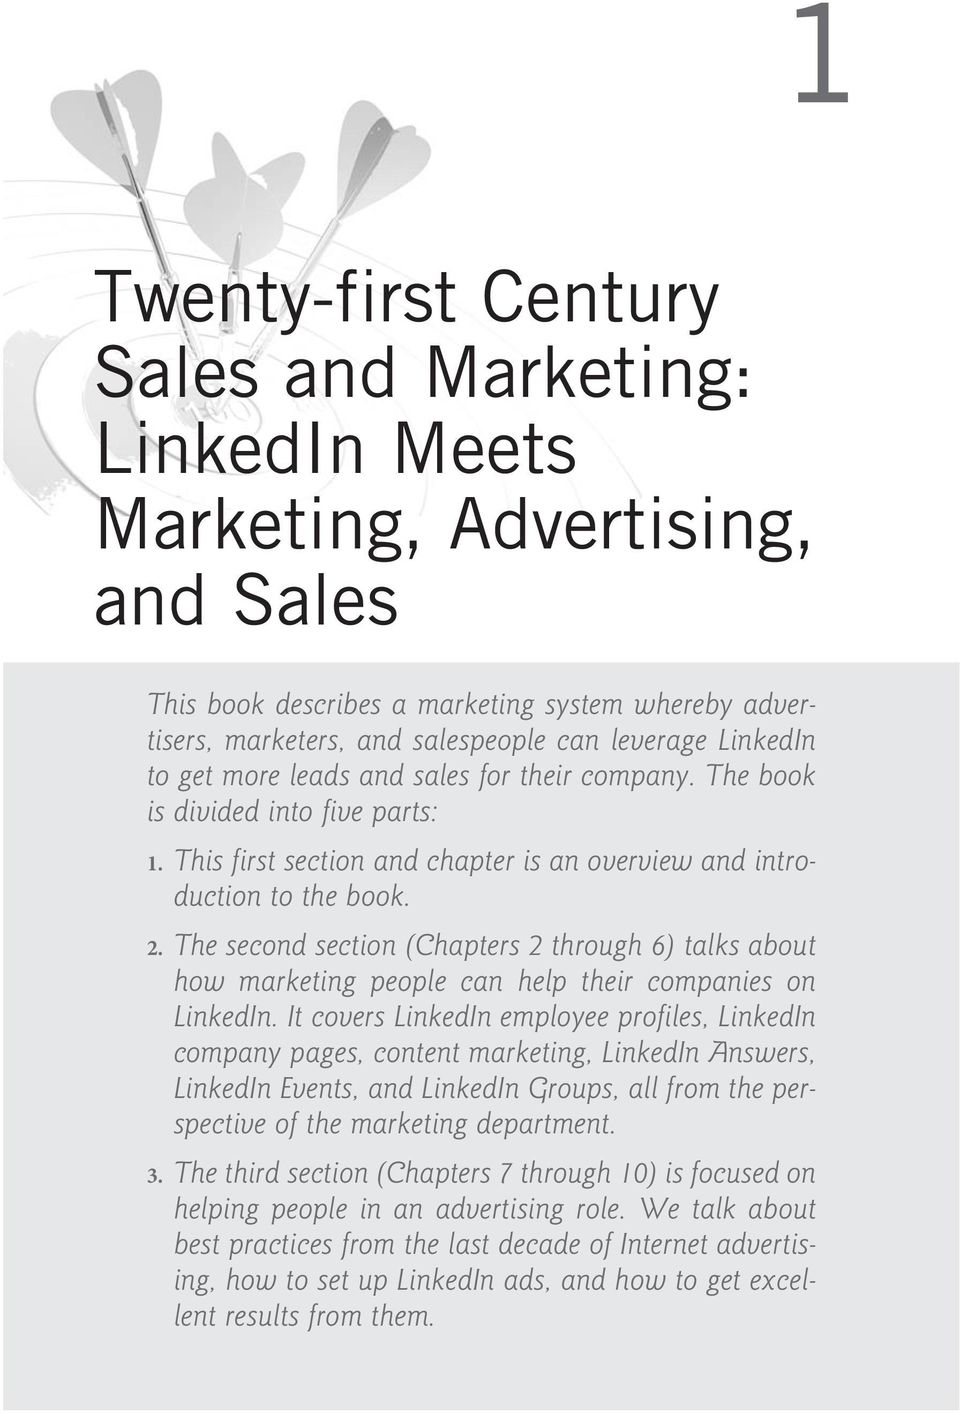 The second section (Chapters 2 through 6) talks about how marketing people can help their companies on LinkedIn.